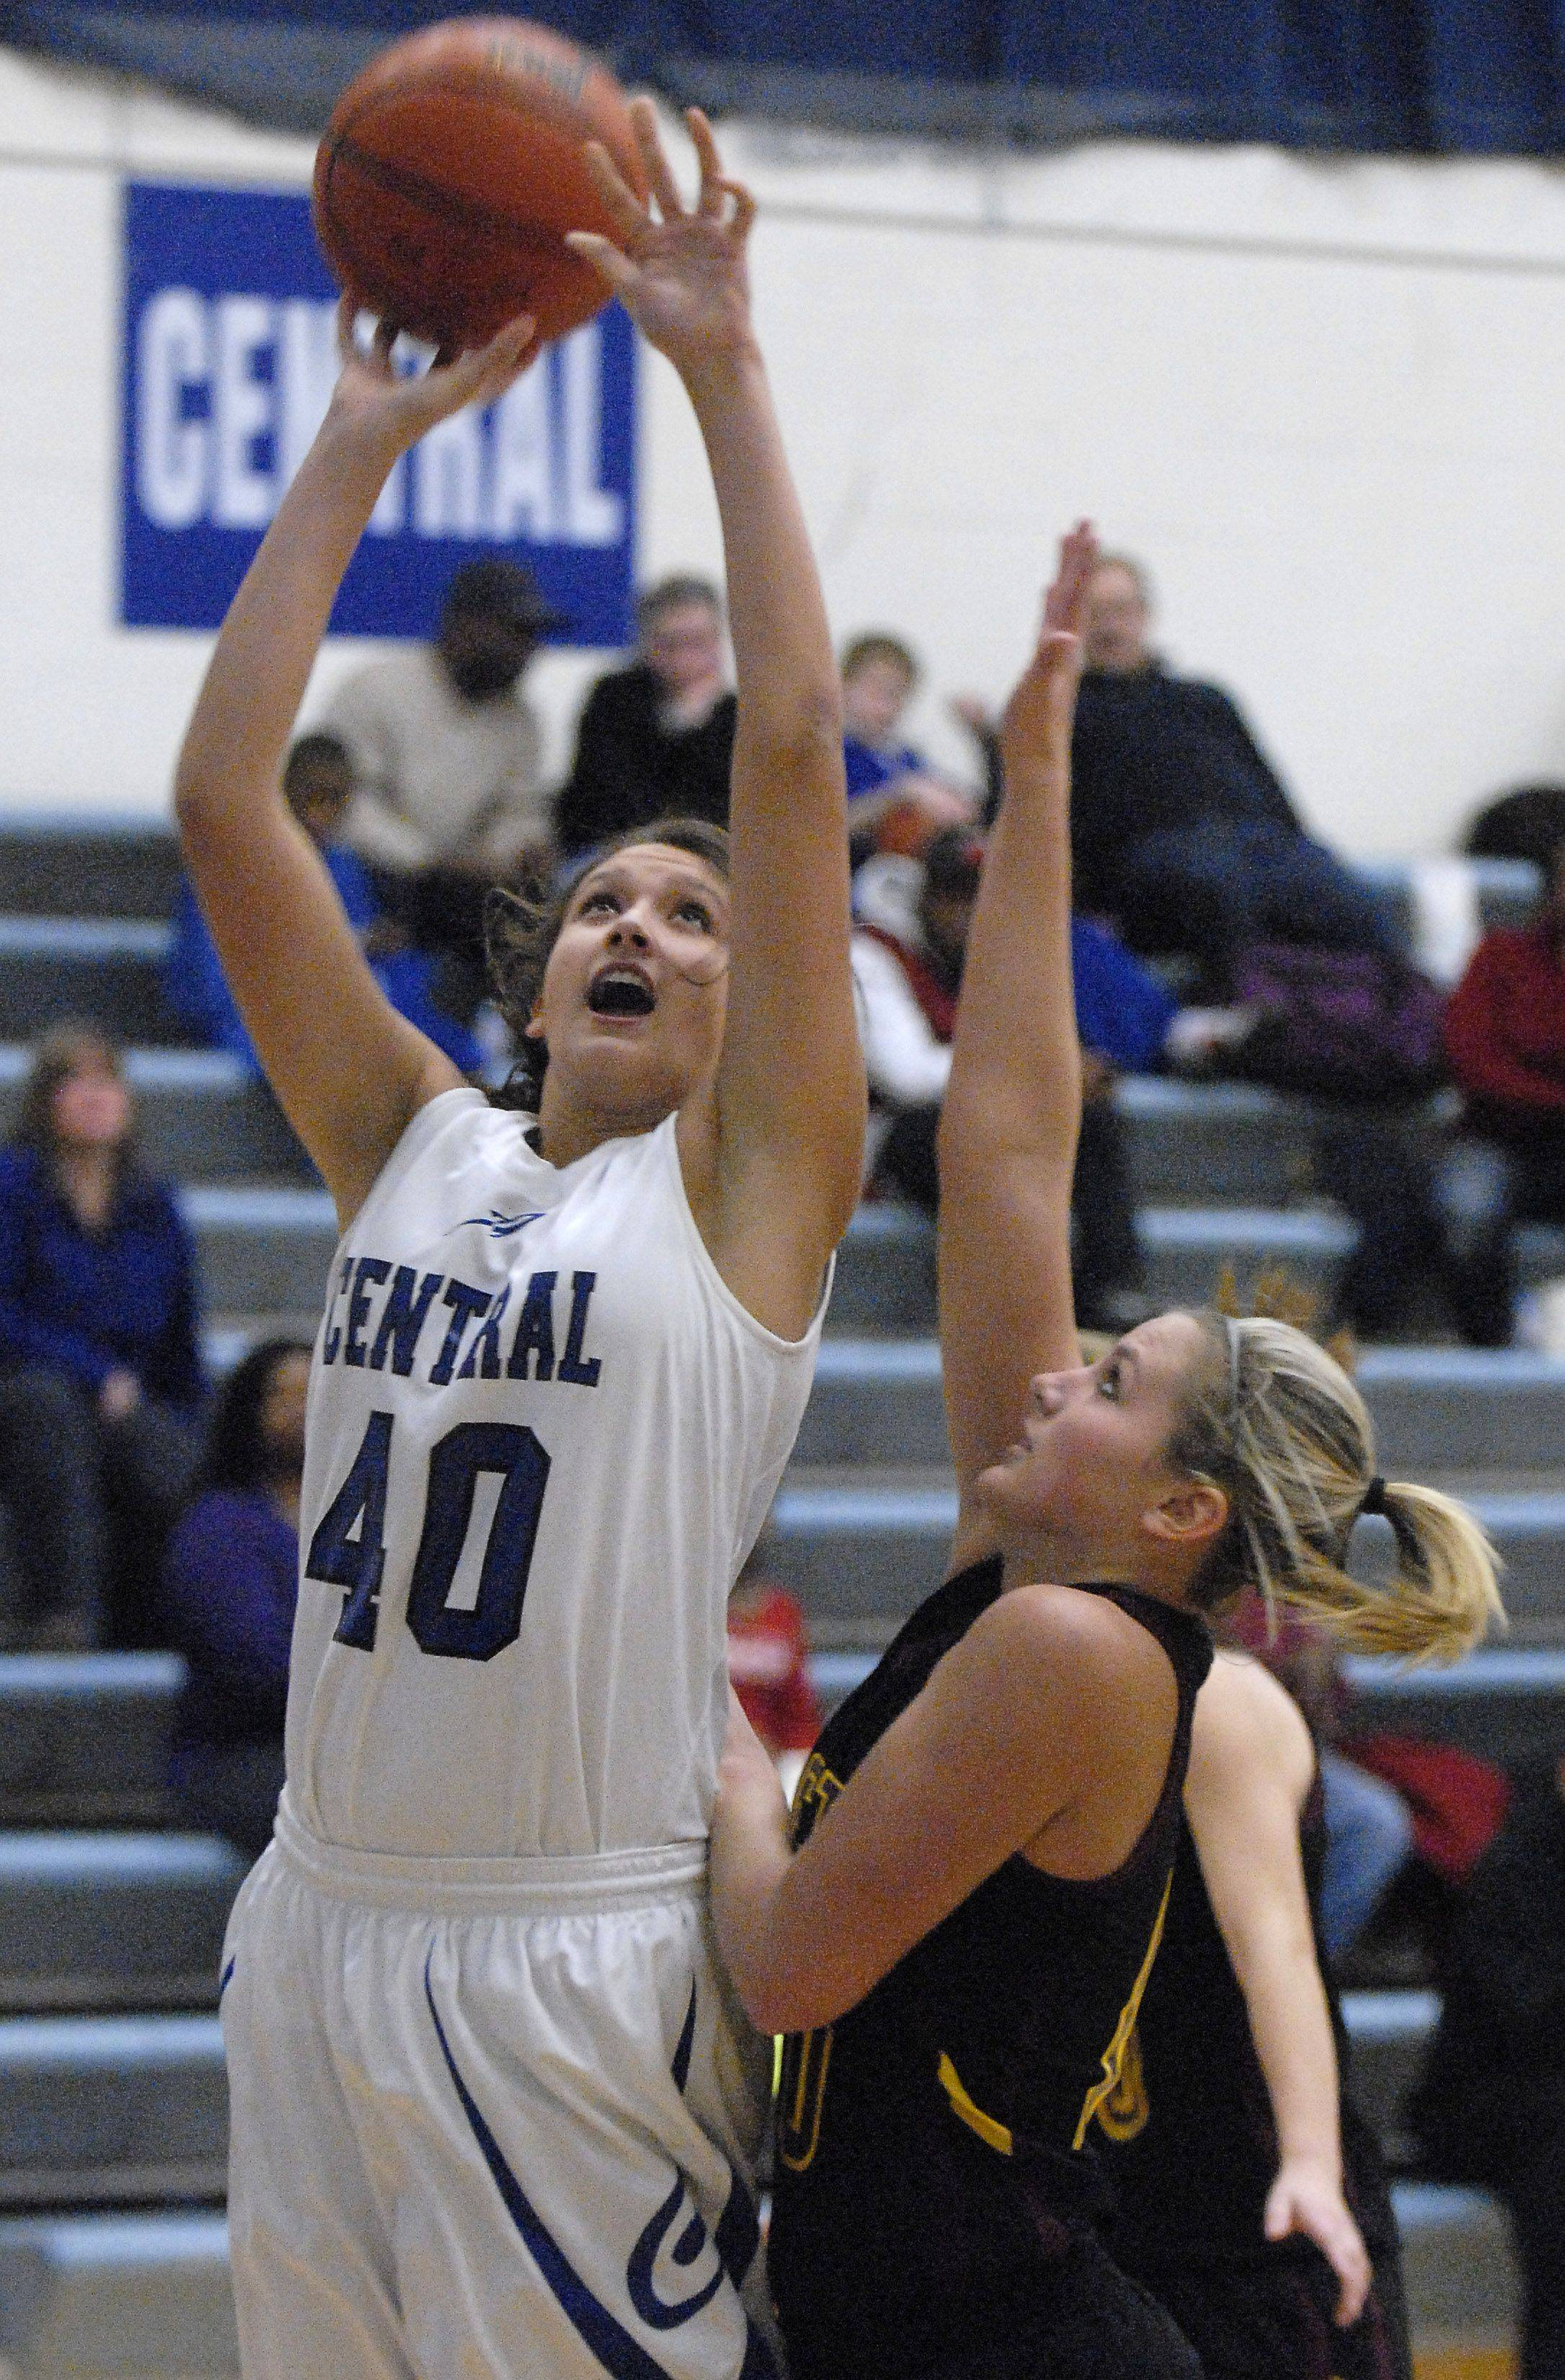 Burlington Central's Alison Colby shoots past an attempted block by Richmond-Burton's Alex Callanan in the first quarter on Saturday at Central.